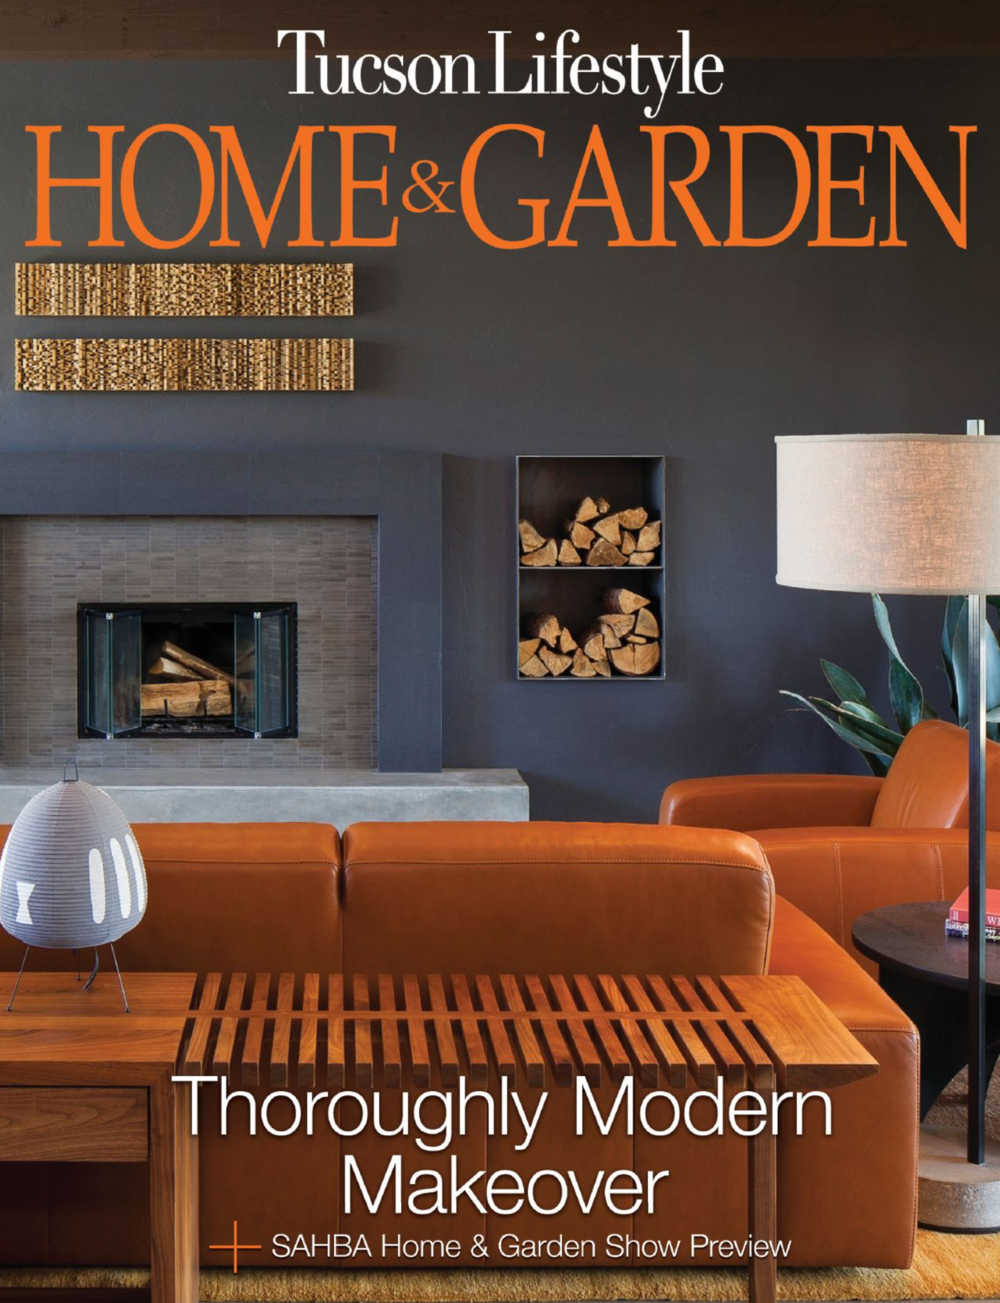 TUCSON LIFESTYLE HOME & GARDEN MAGAZINE  Oct. 2013